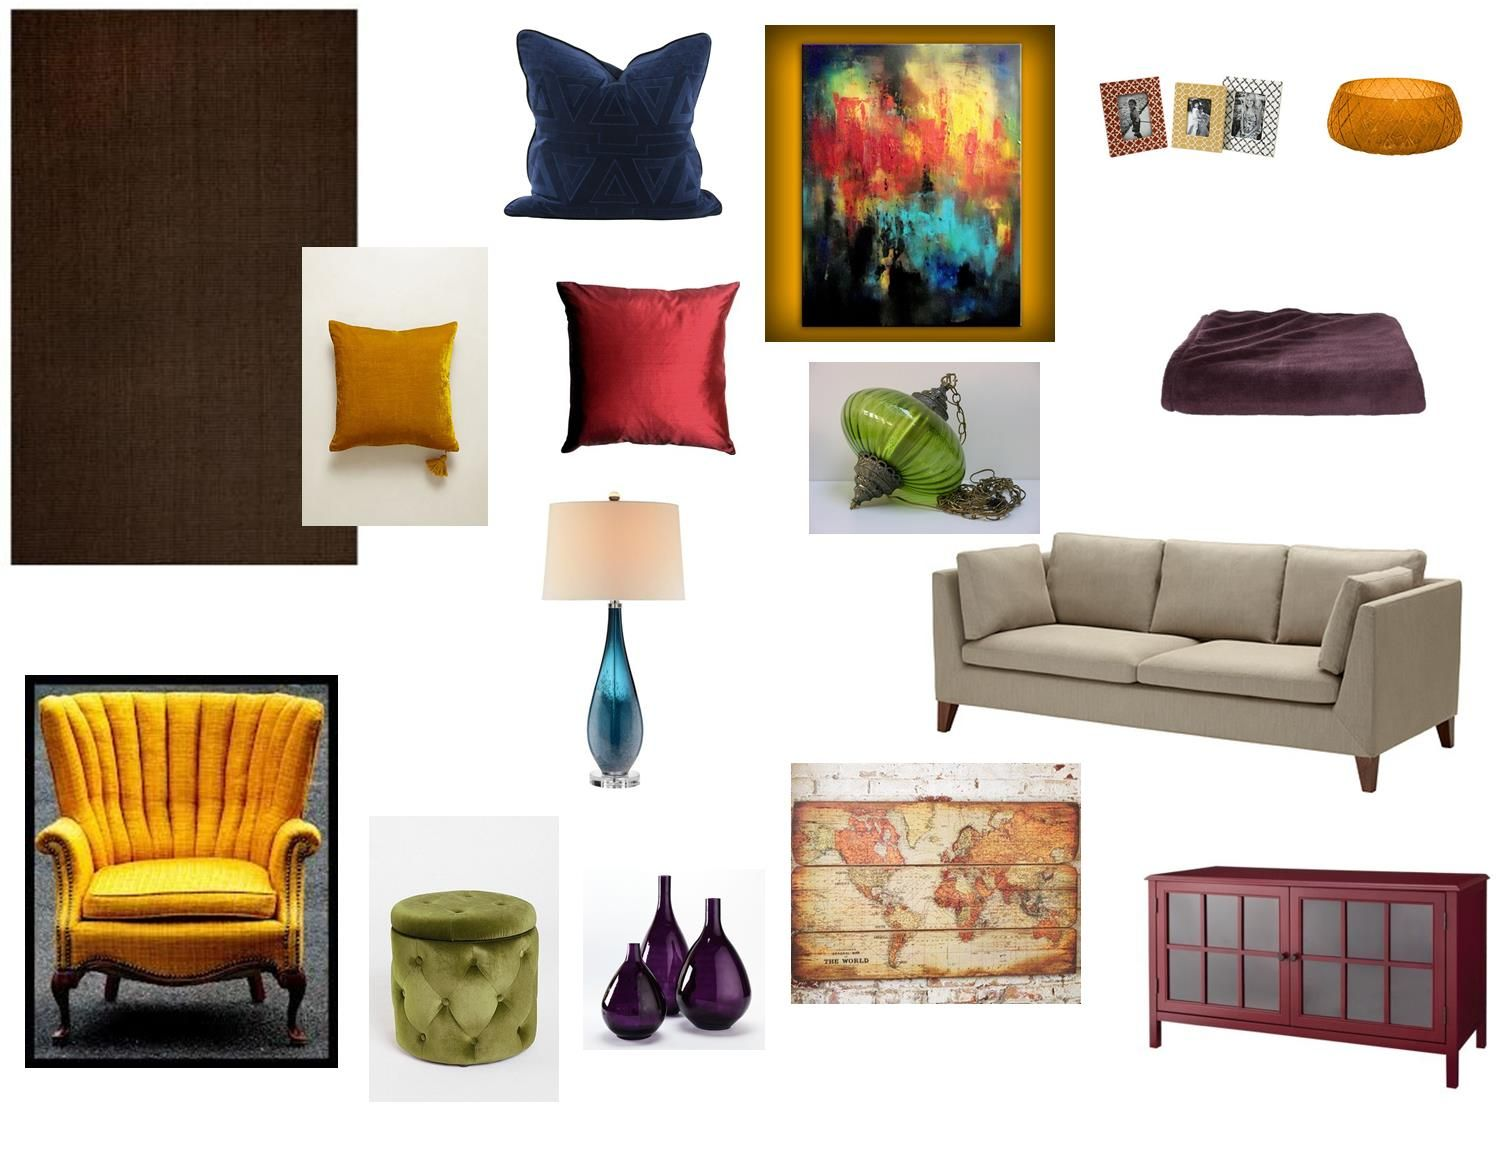 My Warm And Cozy Living Room Jewel Tones Red Plum Green Mustard Nav